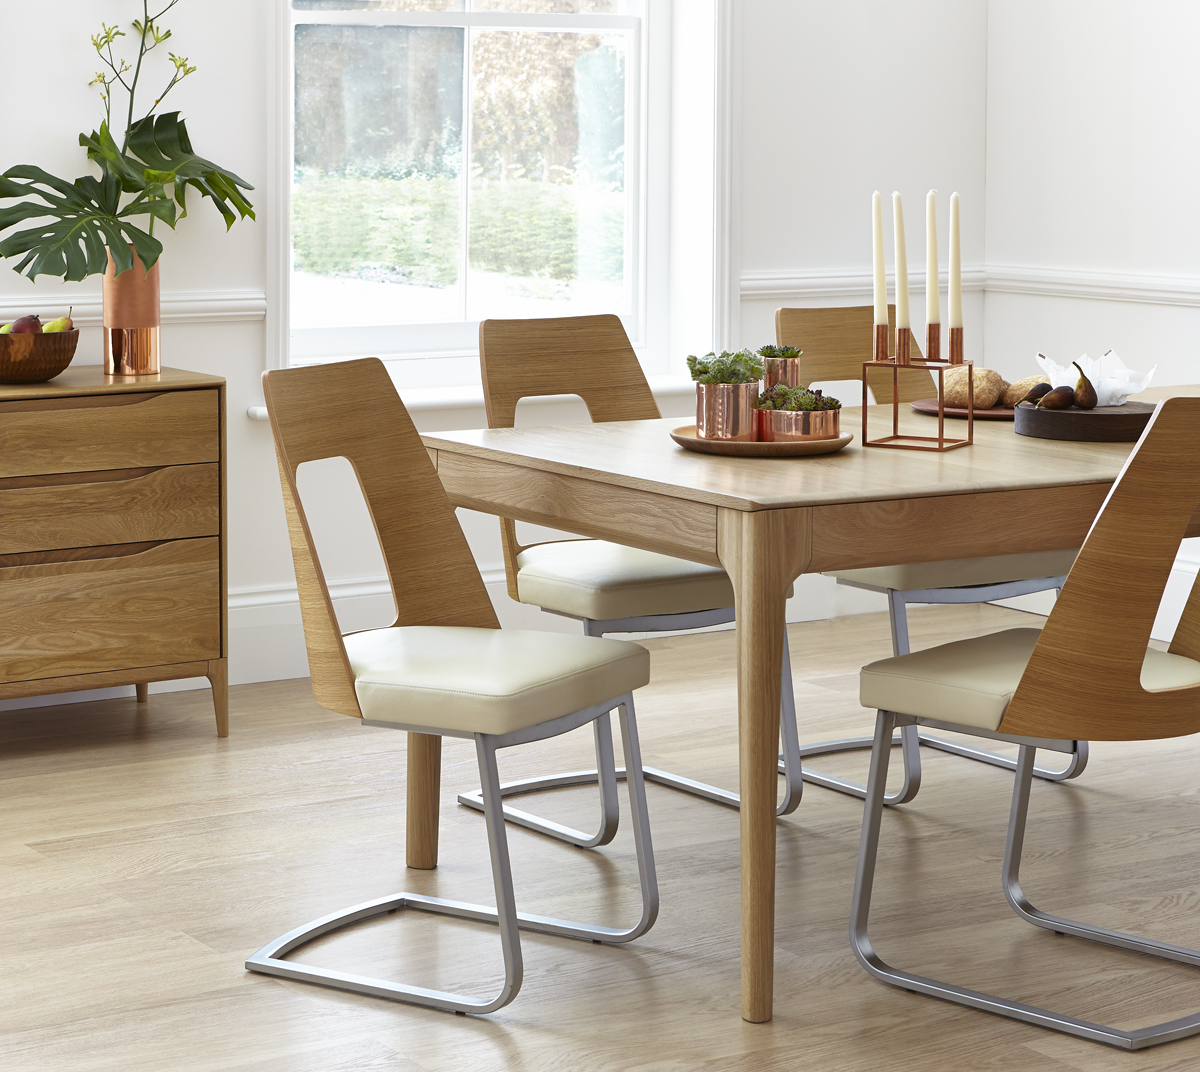 ercol dining room furniture  eBay